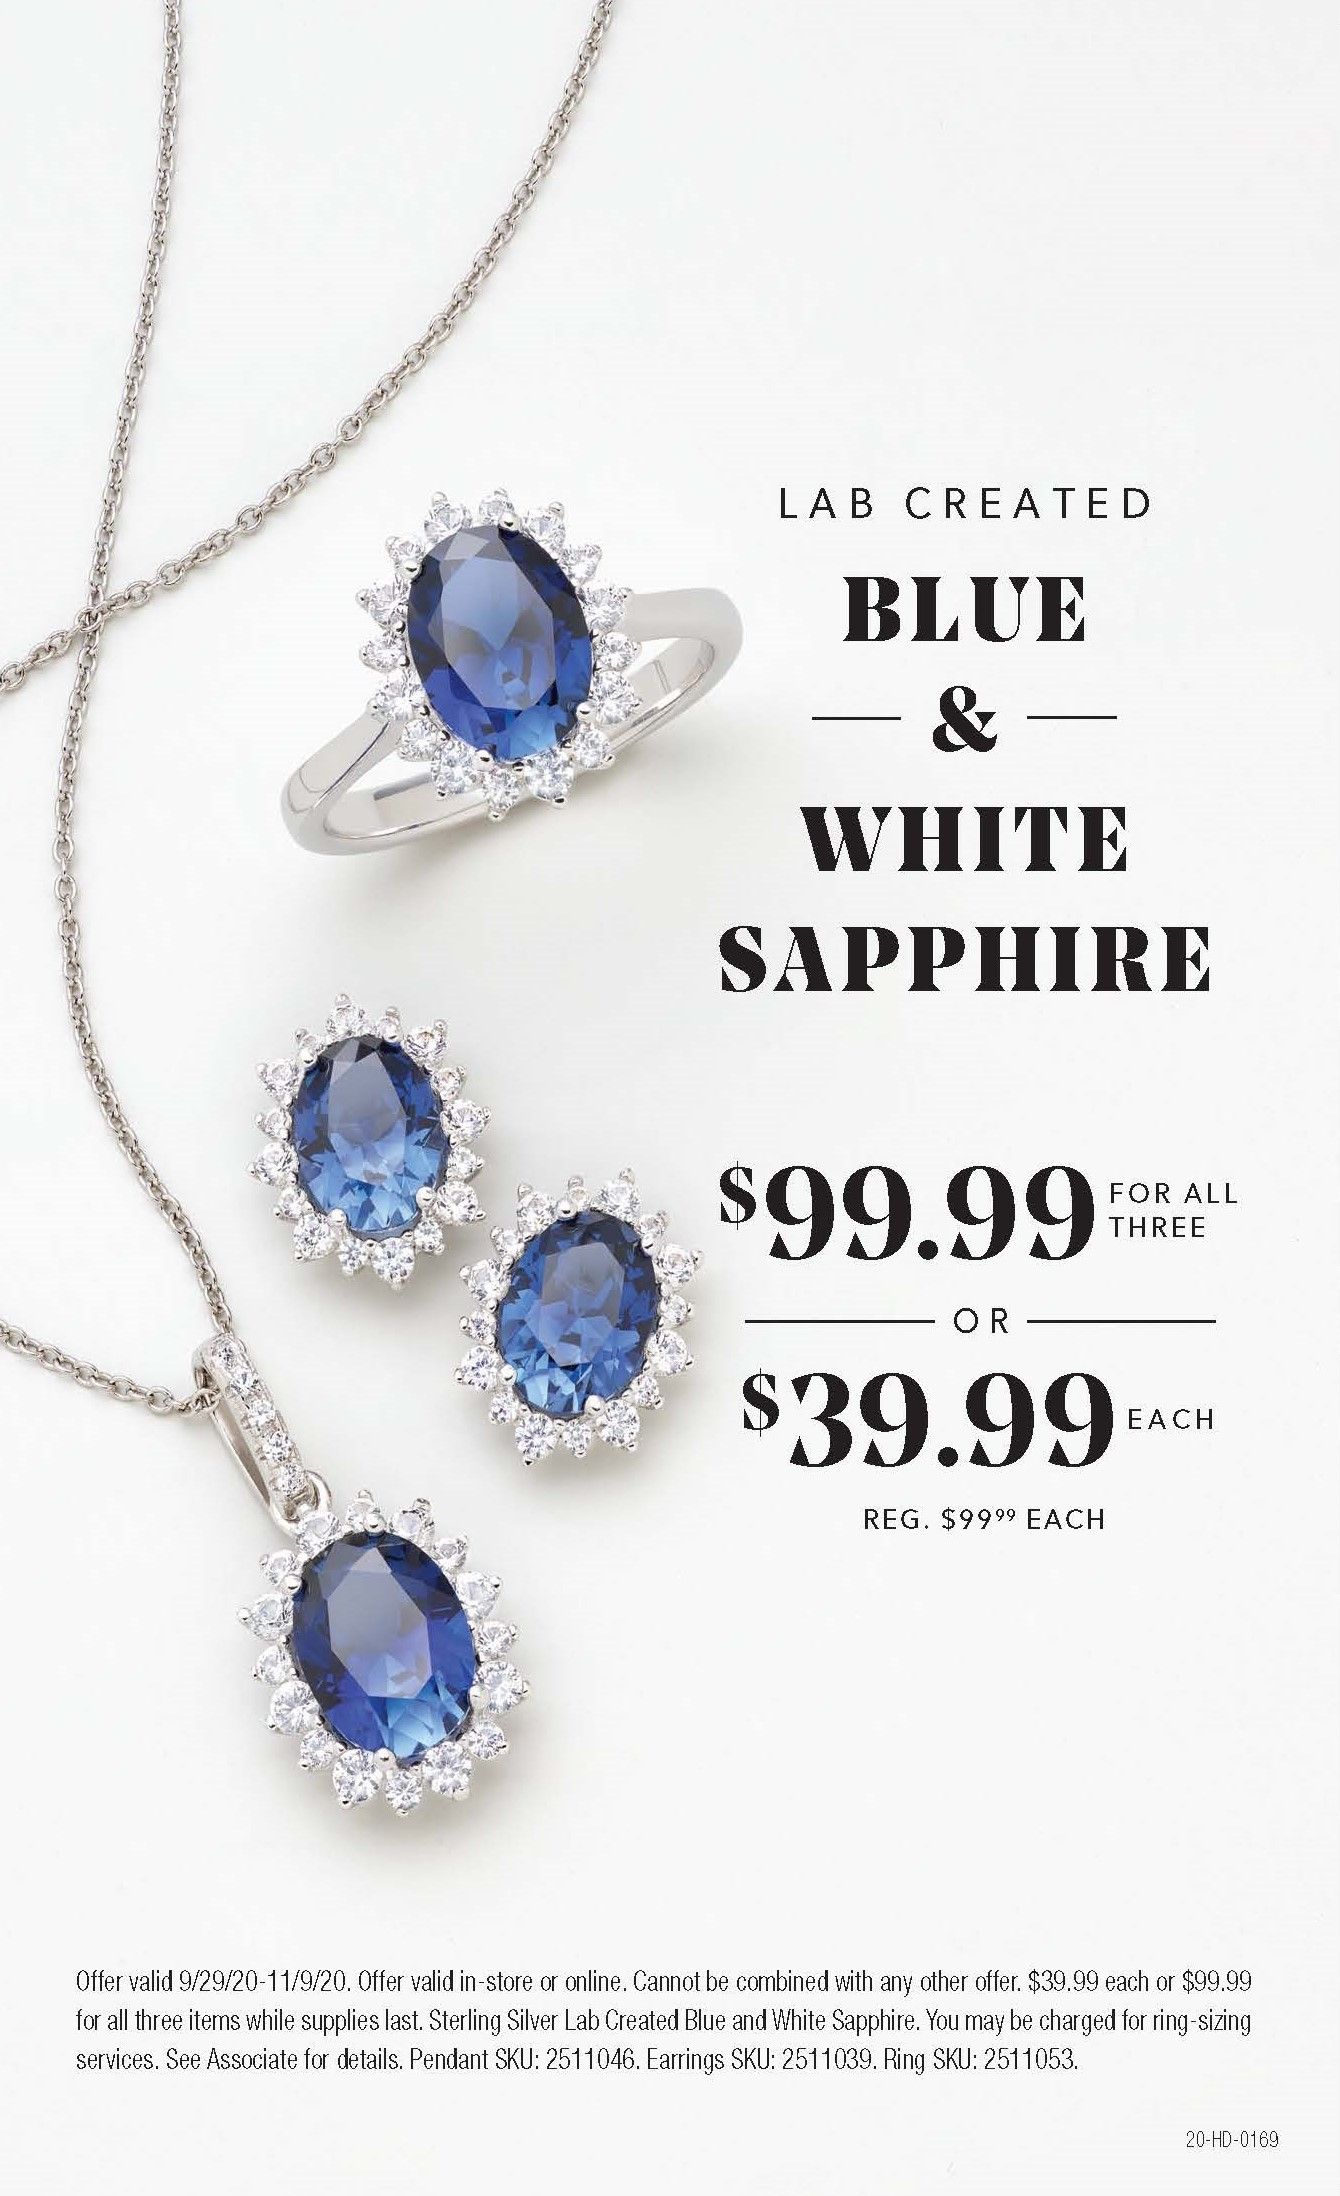 Lab Created Blue & White Sapphire from Helzberg Diamonds